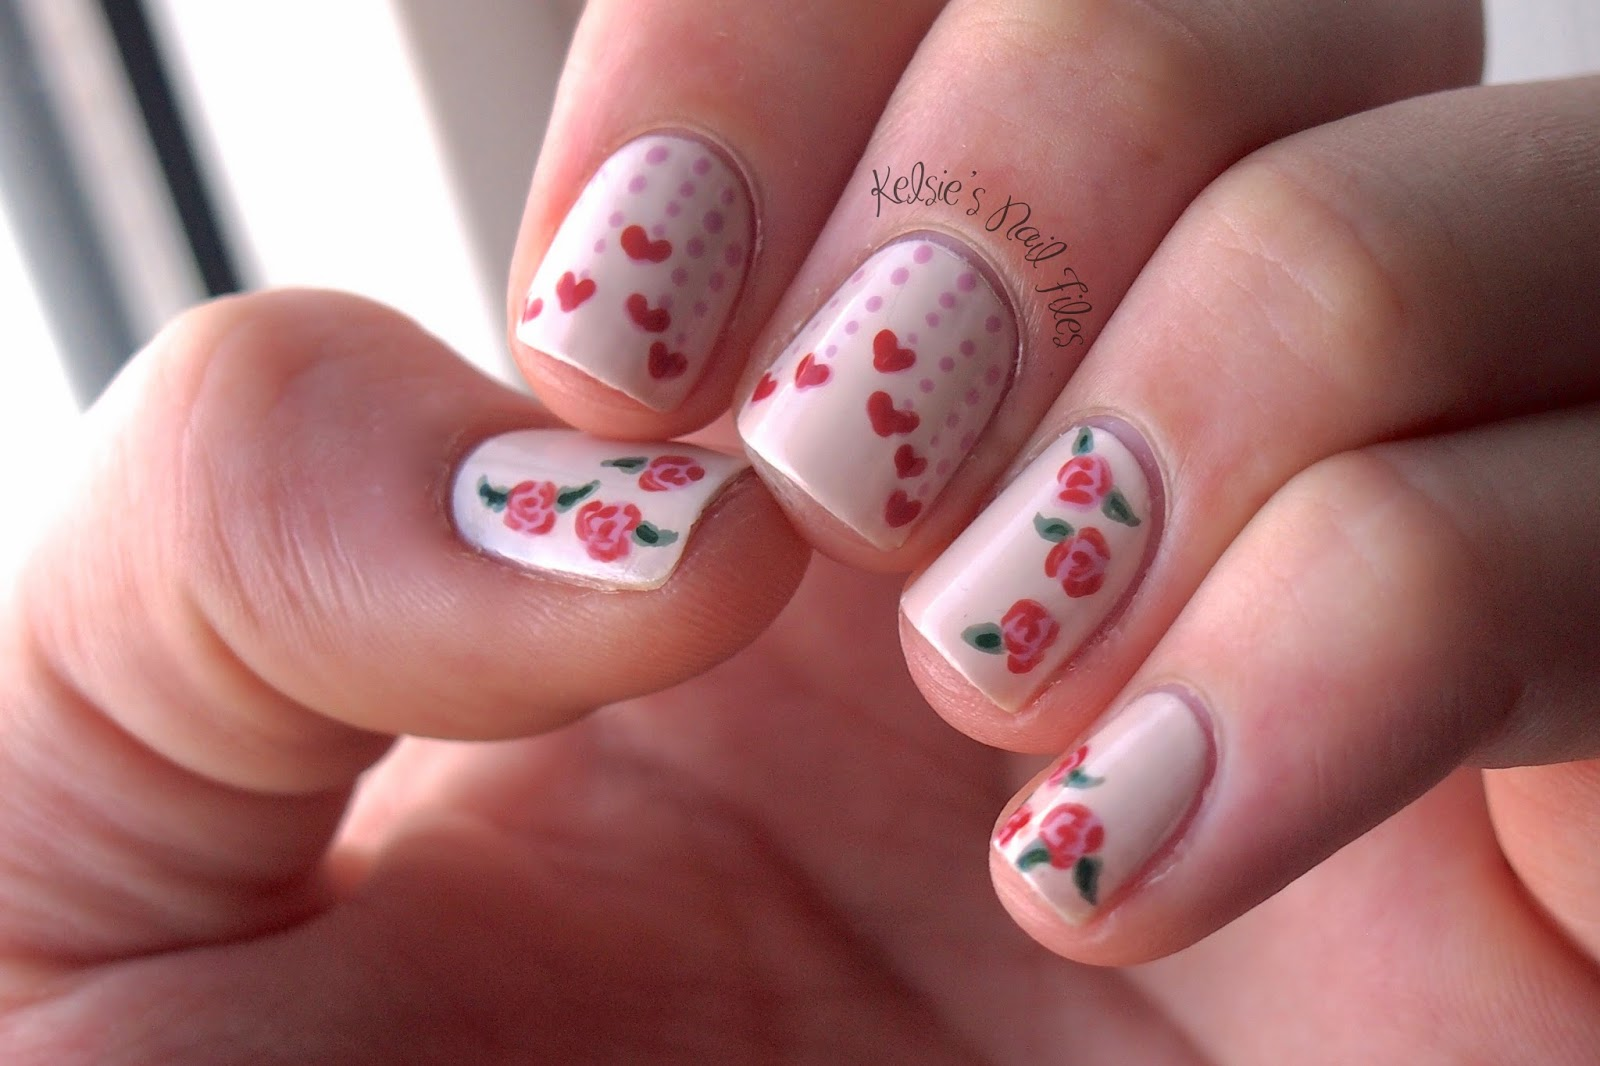 Kelsies nail files nailpolis valentines nail art contest if you like my design just click on the photo below and click like 15 votes gets me on to the judging round there are tons of gorgeous designs prinsesfo Gallery